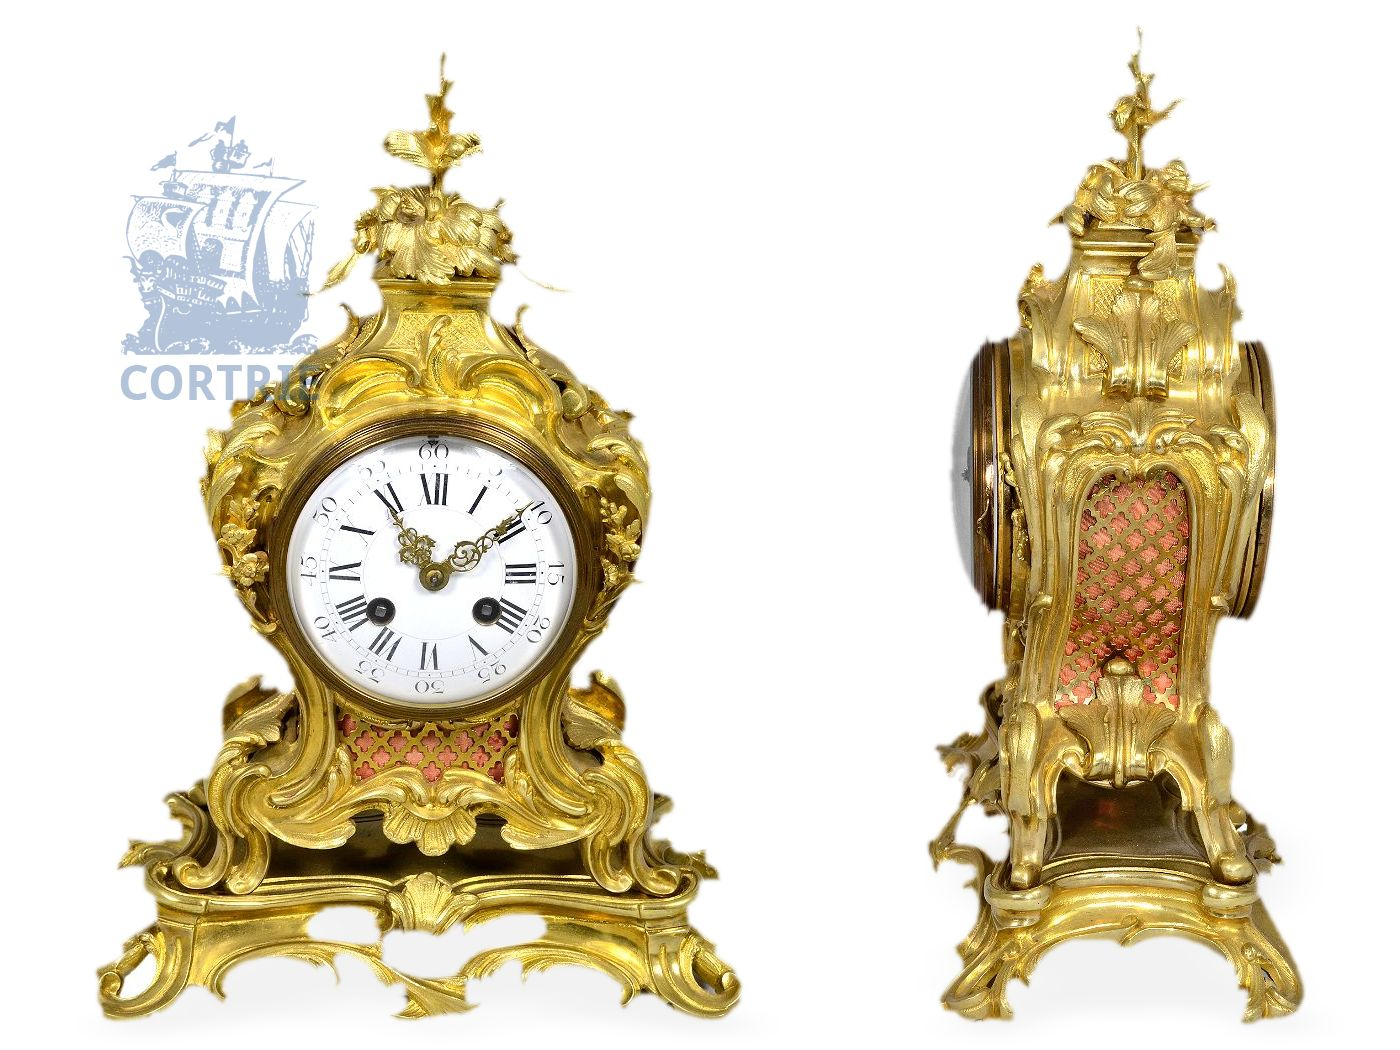 Table clock: very fine pendulum clock, Louis XV style (Ormolu Mantel Clock), signed Marti et Cie, Médaille d'argent Paris 1889-